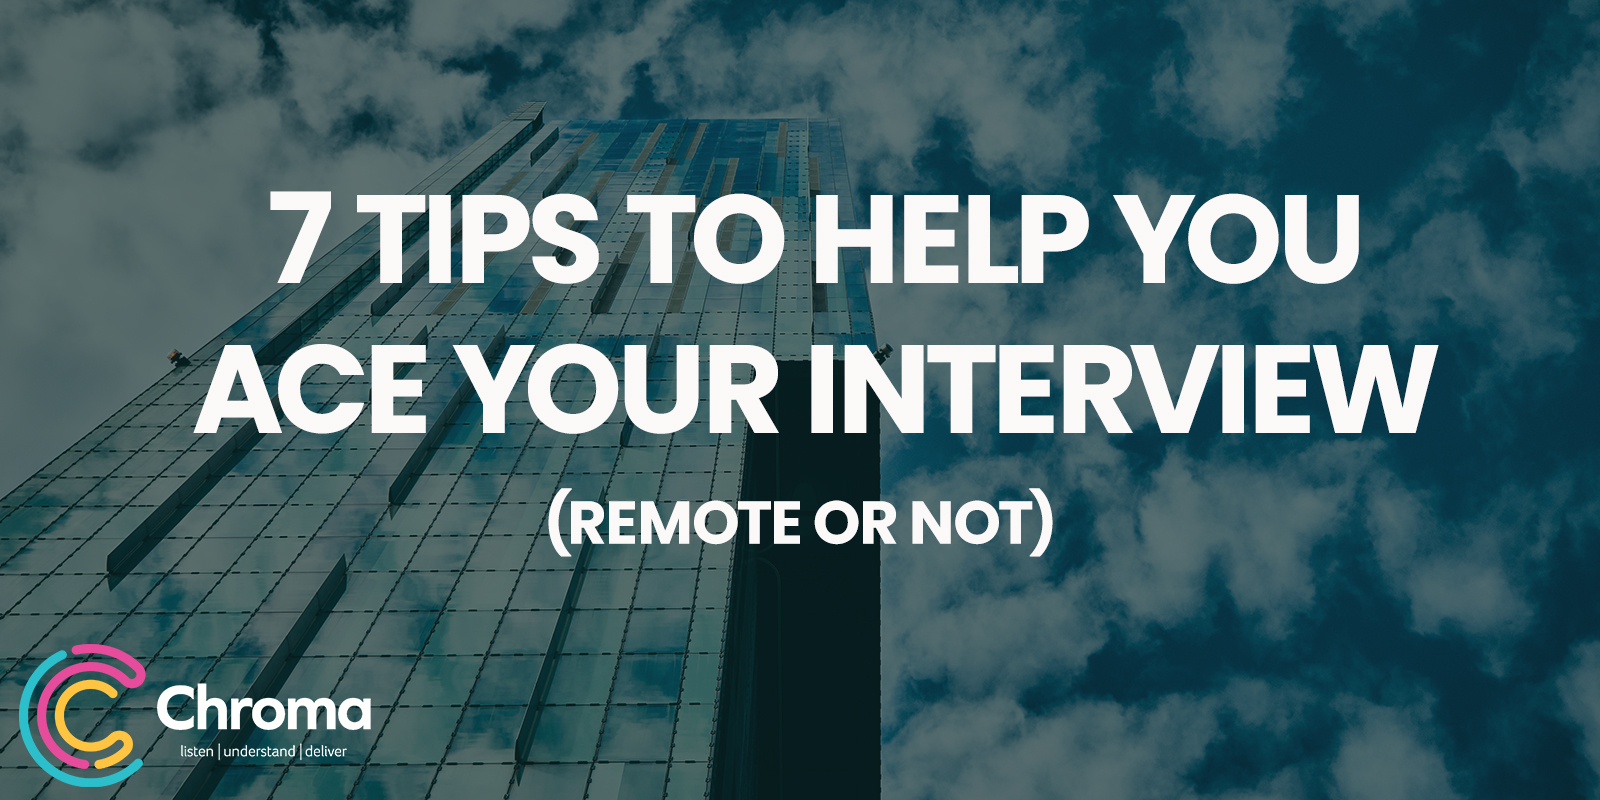 7 Tips to Help You Ace Your Interview (Remote or Not)